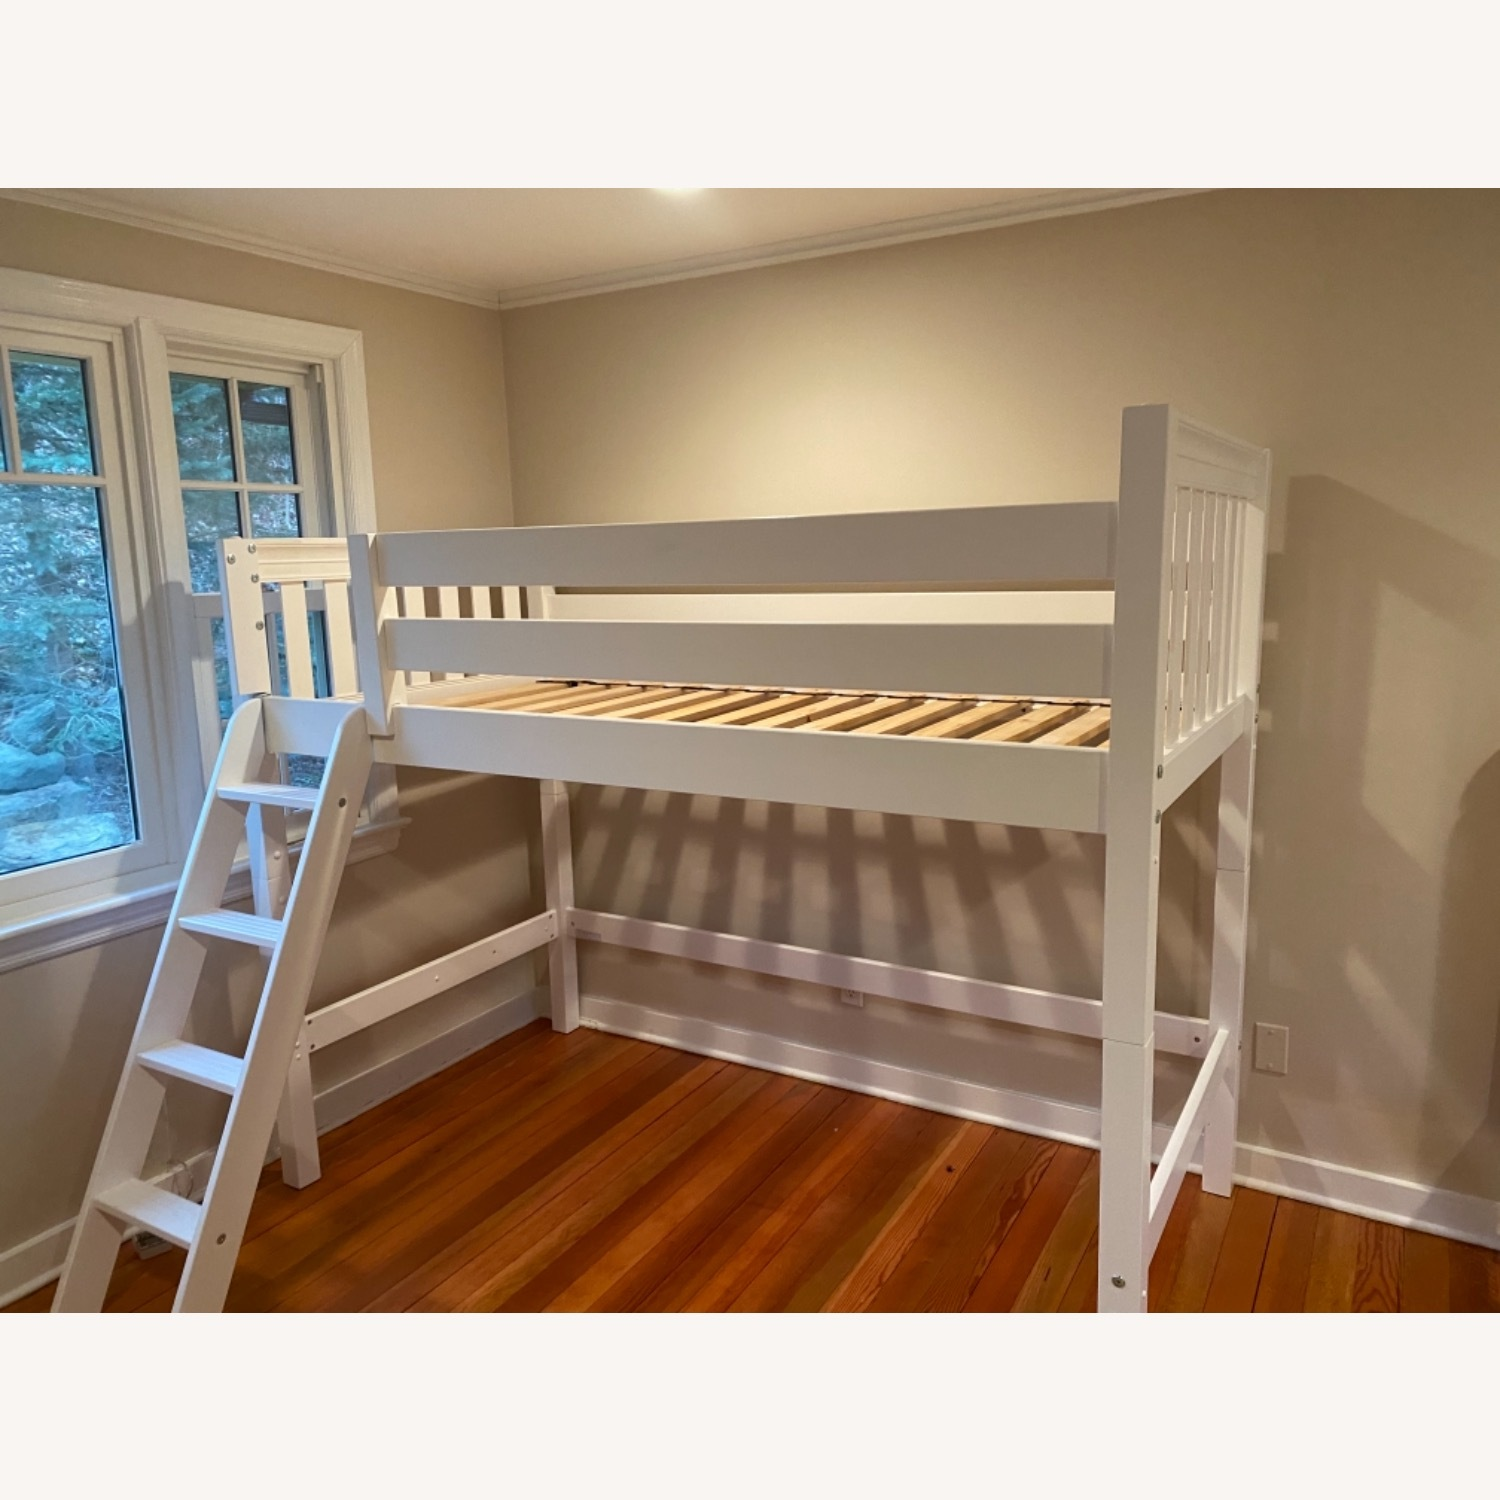 New White Loft Bed - Twin - image-0